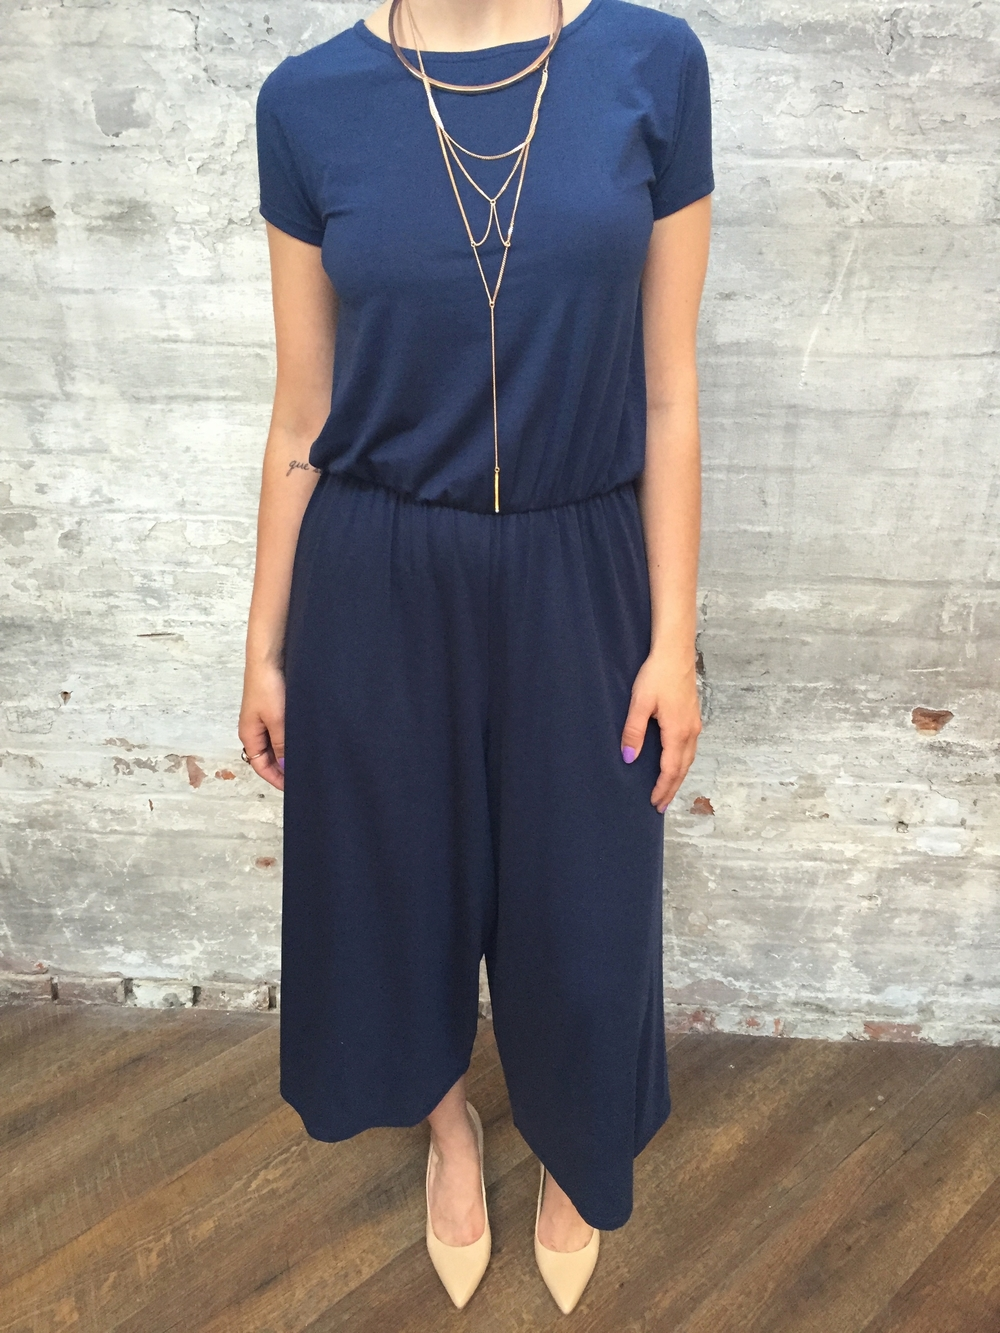 American Vintage Cropped Jumpsuit $198 Jenny Bird Neith Necklace $140 Tiger of Sweden Leather Pumps $249